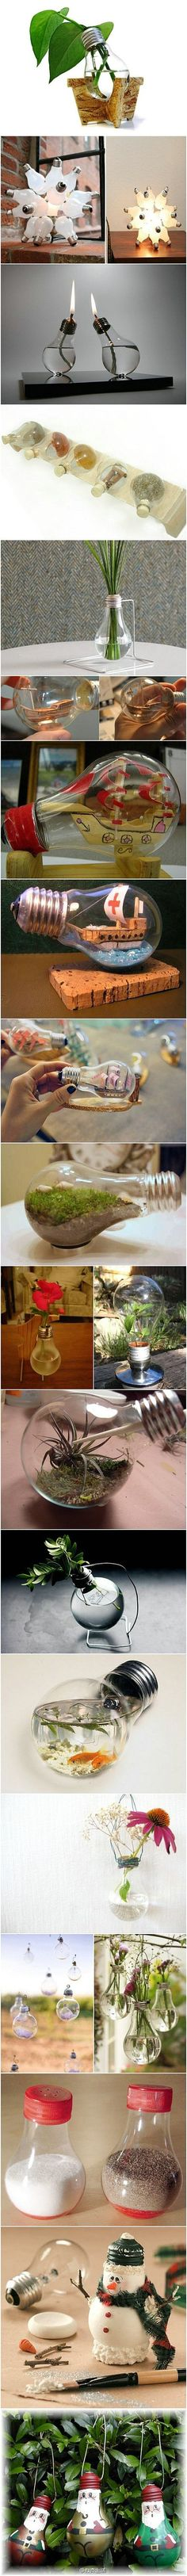 How great is this??? great ideas for recycling old light bulbs